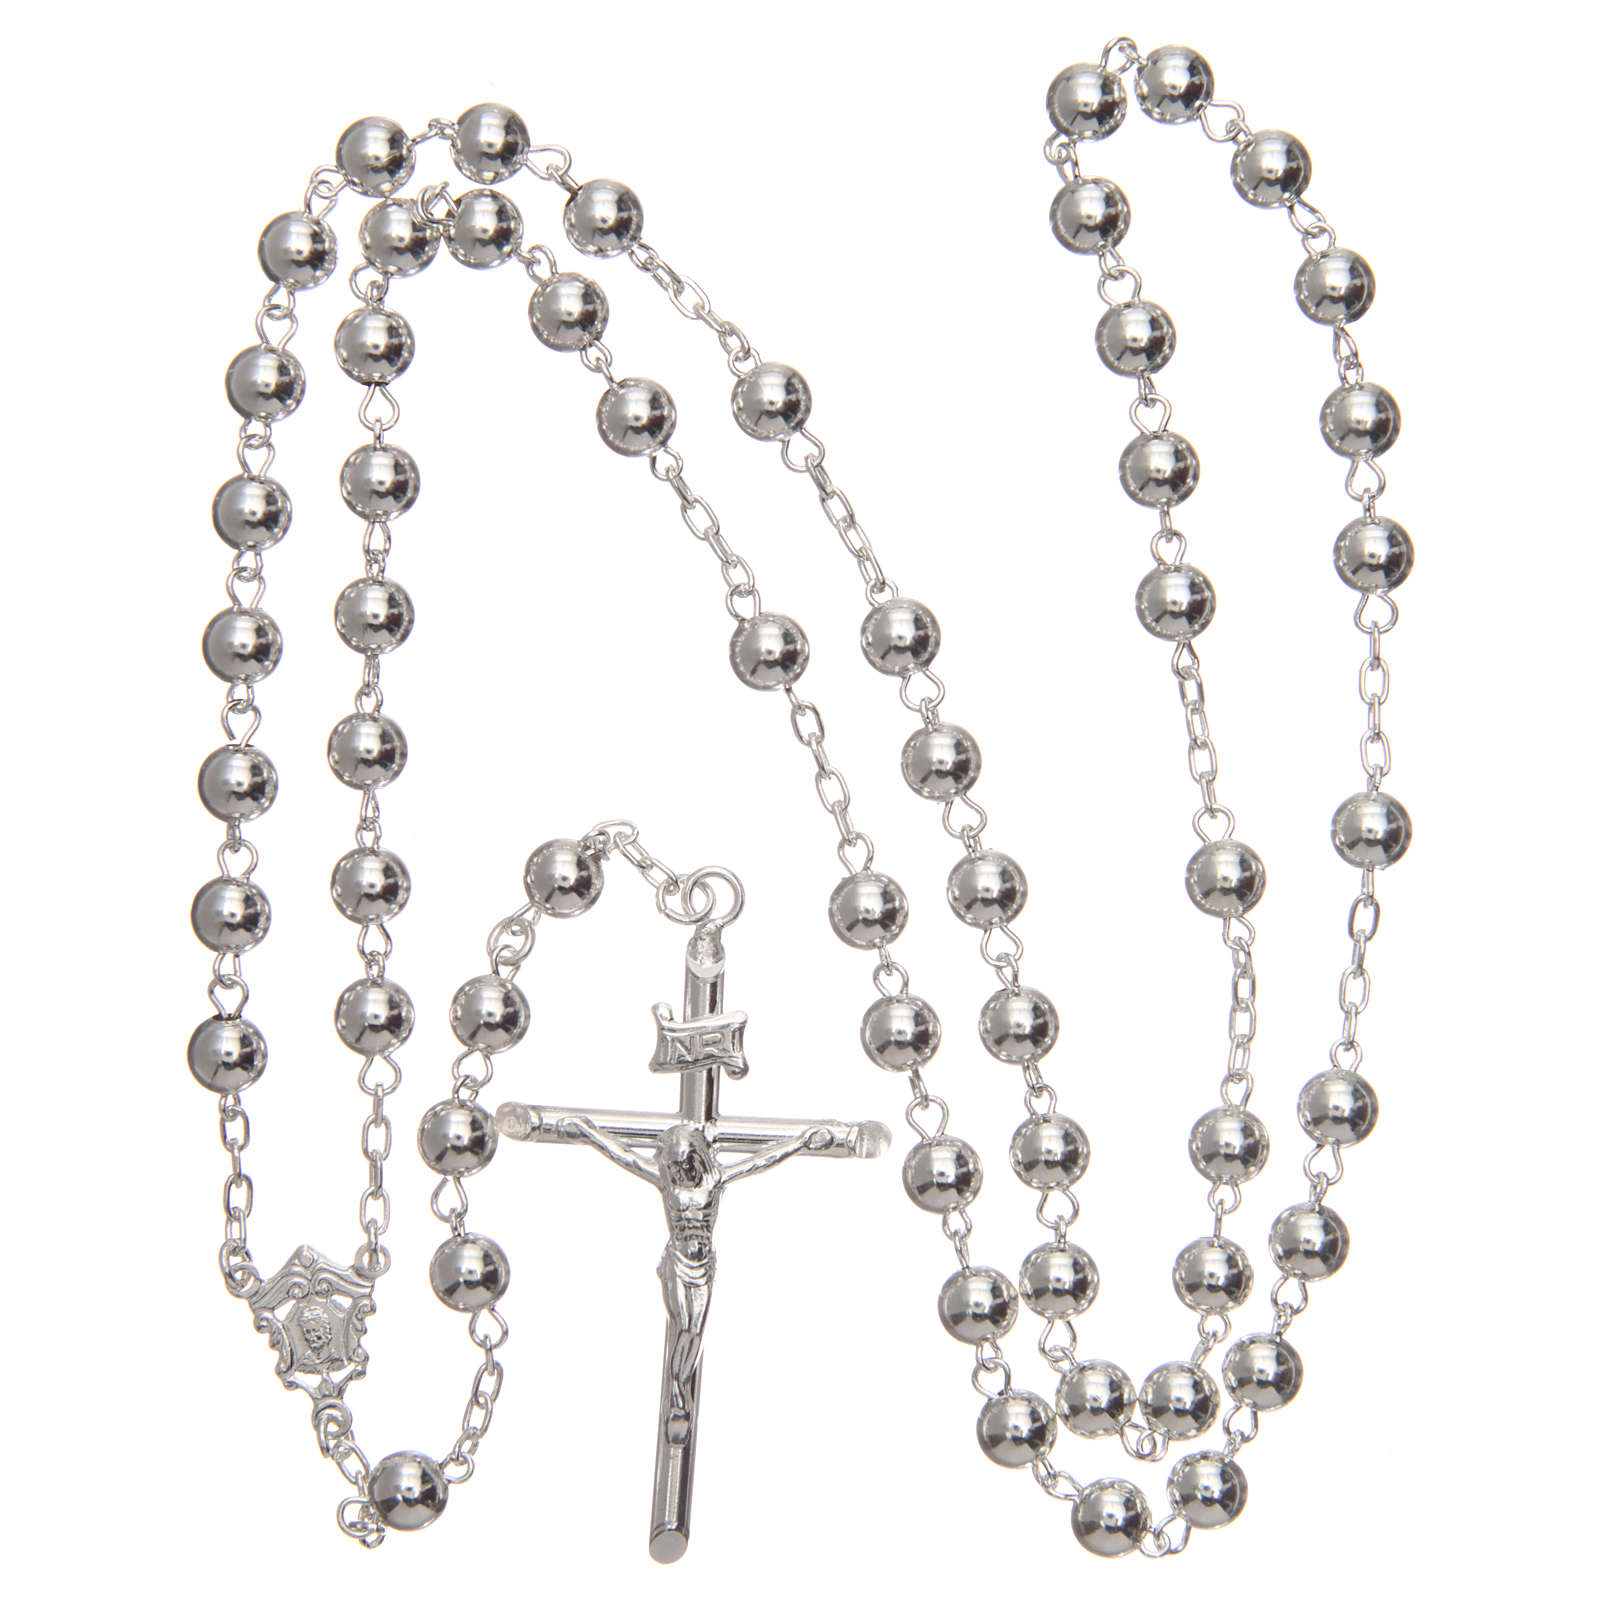 Rosary in 925 silver diameter 6 mm 4